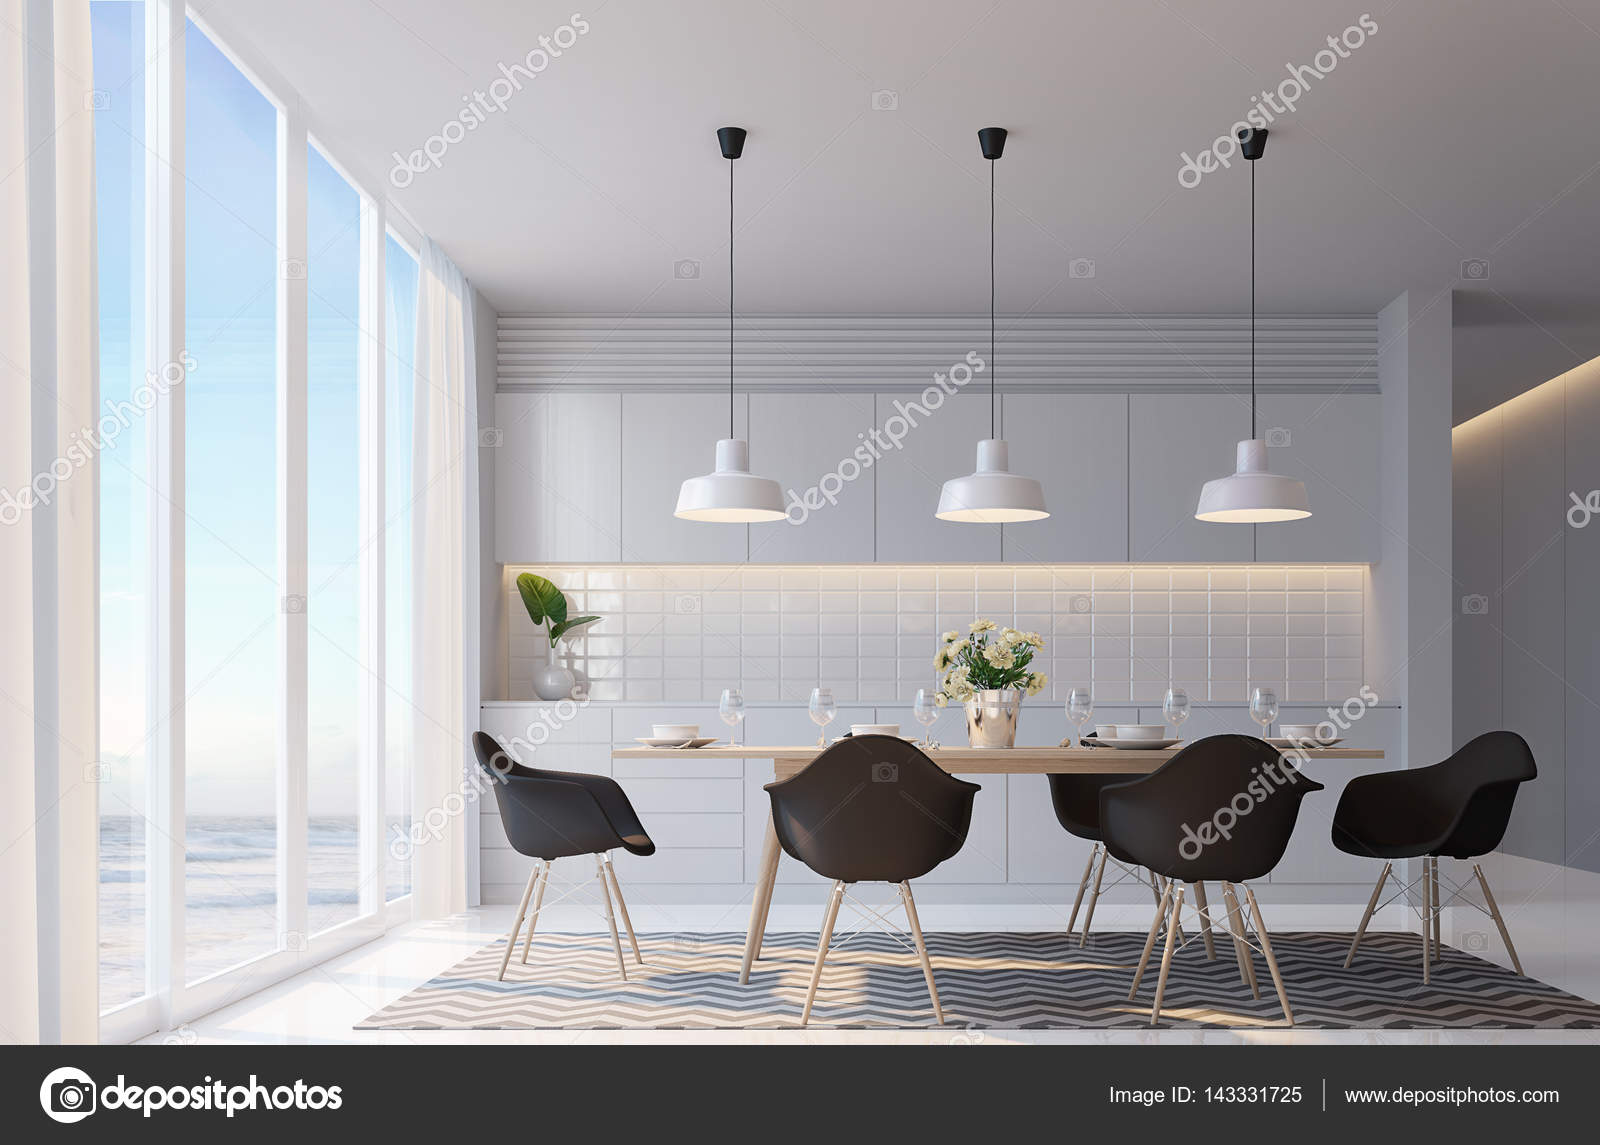 Modern White Dining Room With Sea View 3d Rendering ImageDecorate Wall Hidden Warm Lightblack FurnitureThere Are Large Windows Looking To Beautiful